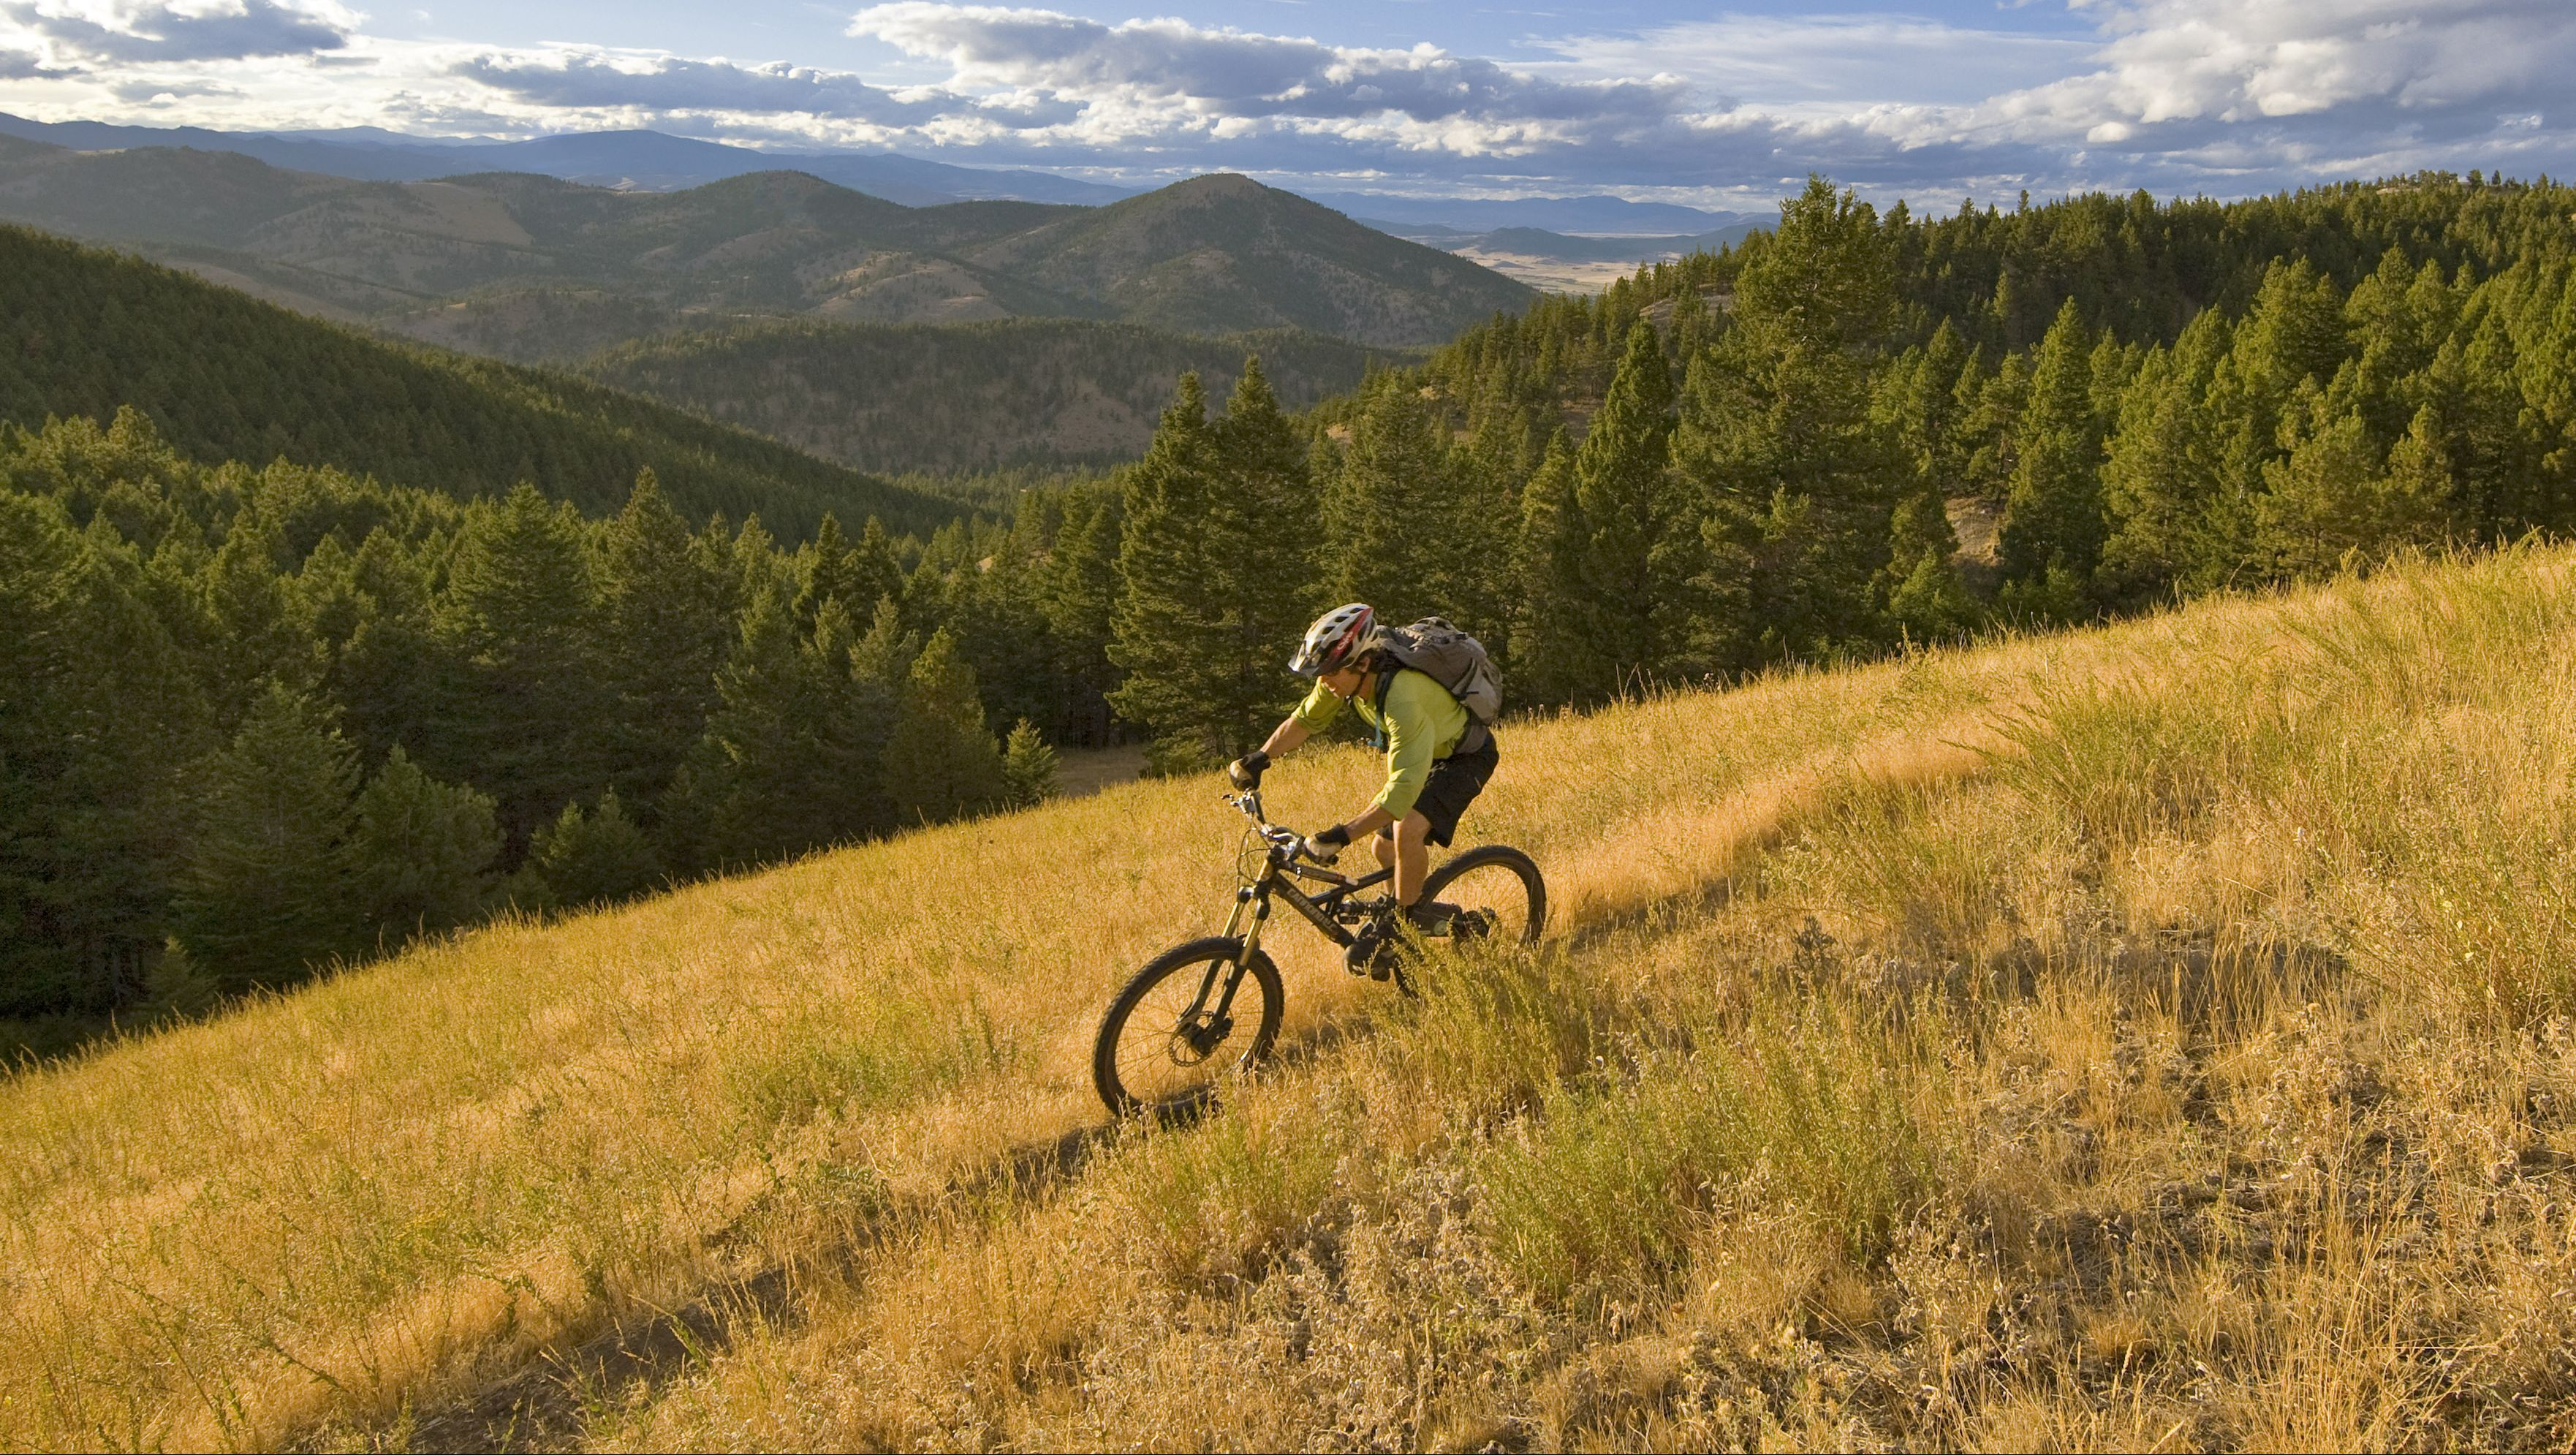 The Top 5 Secret Mountain Bike Destinations in the US